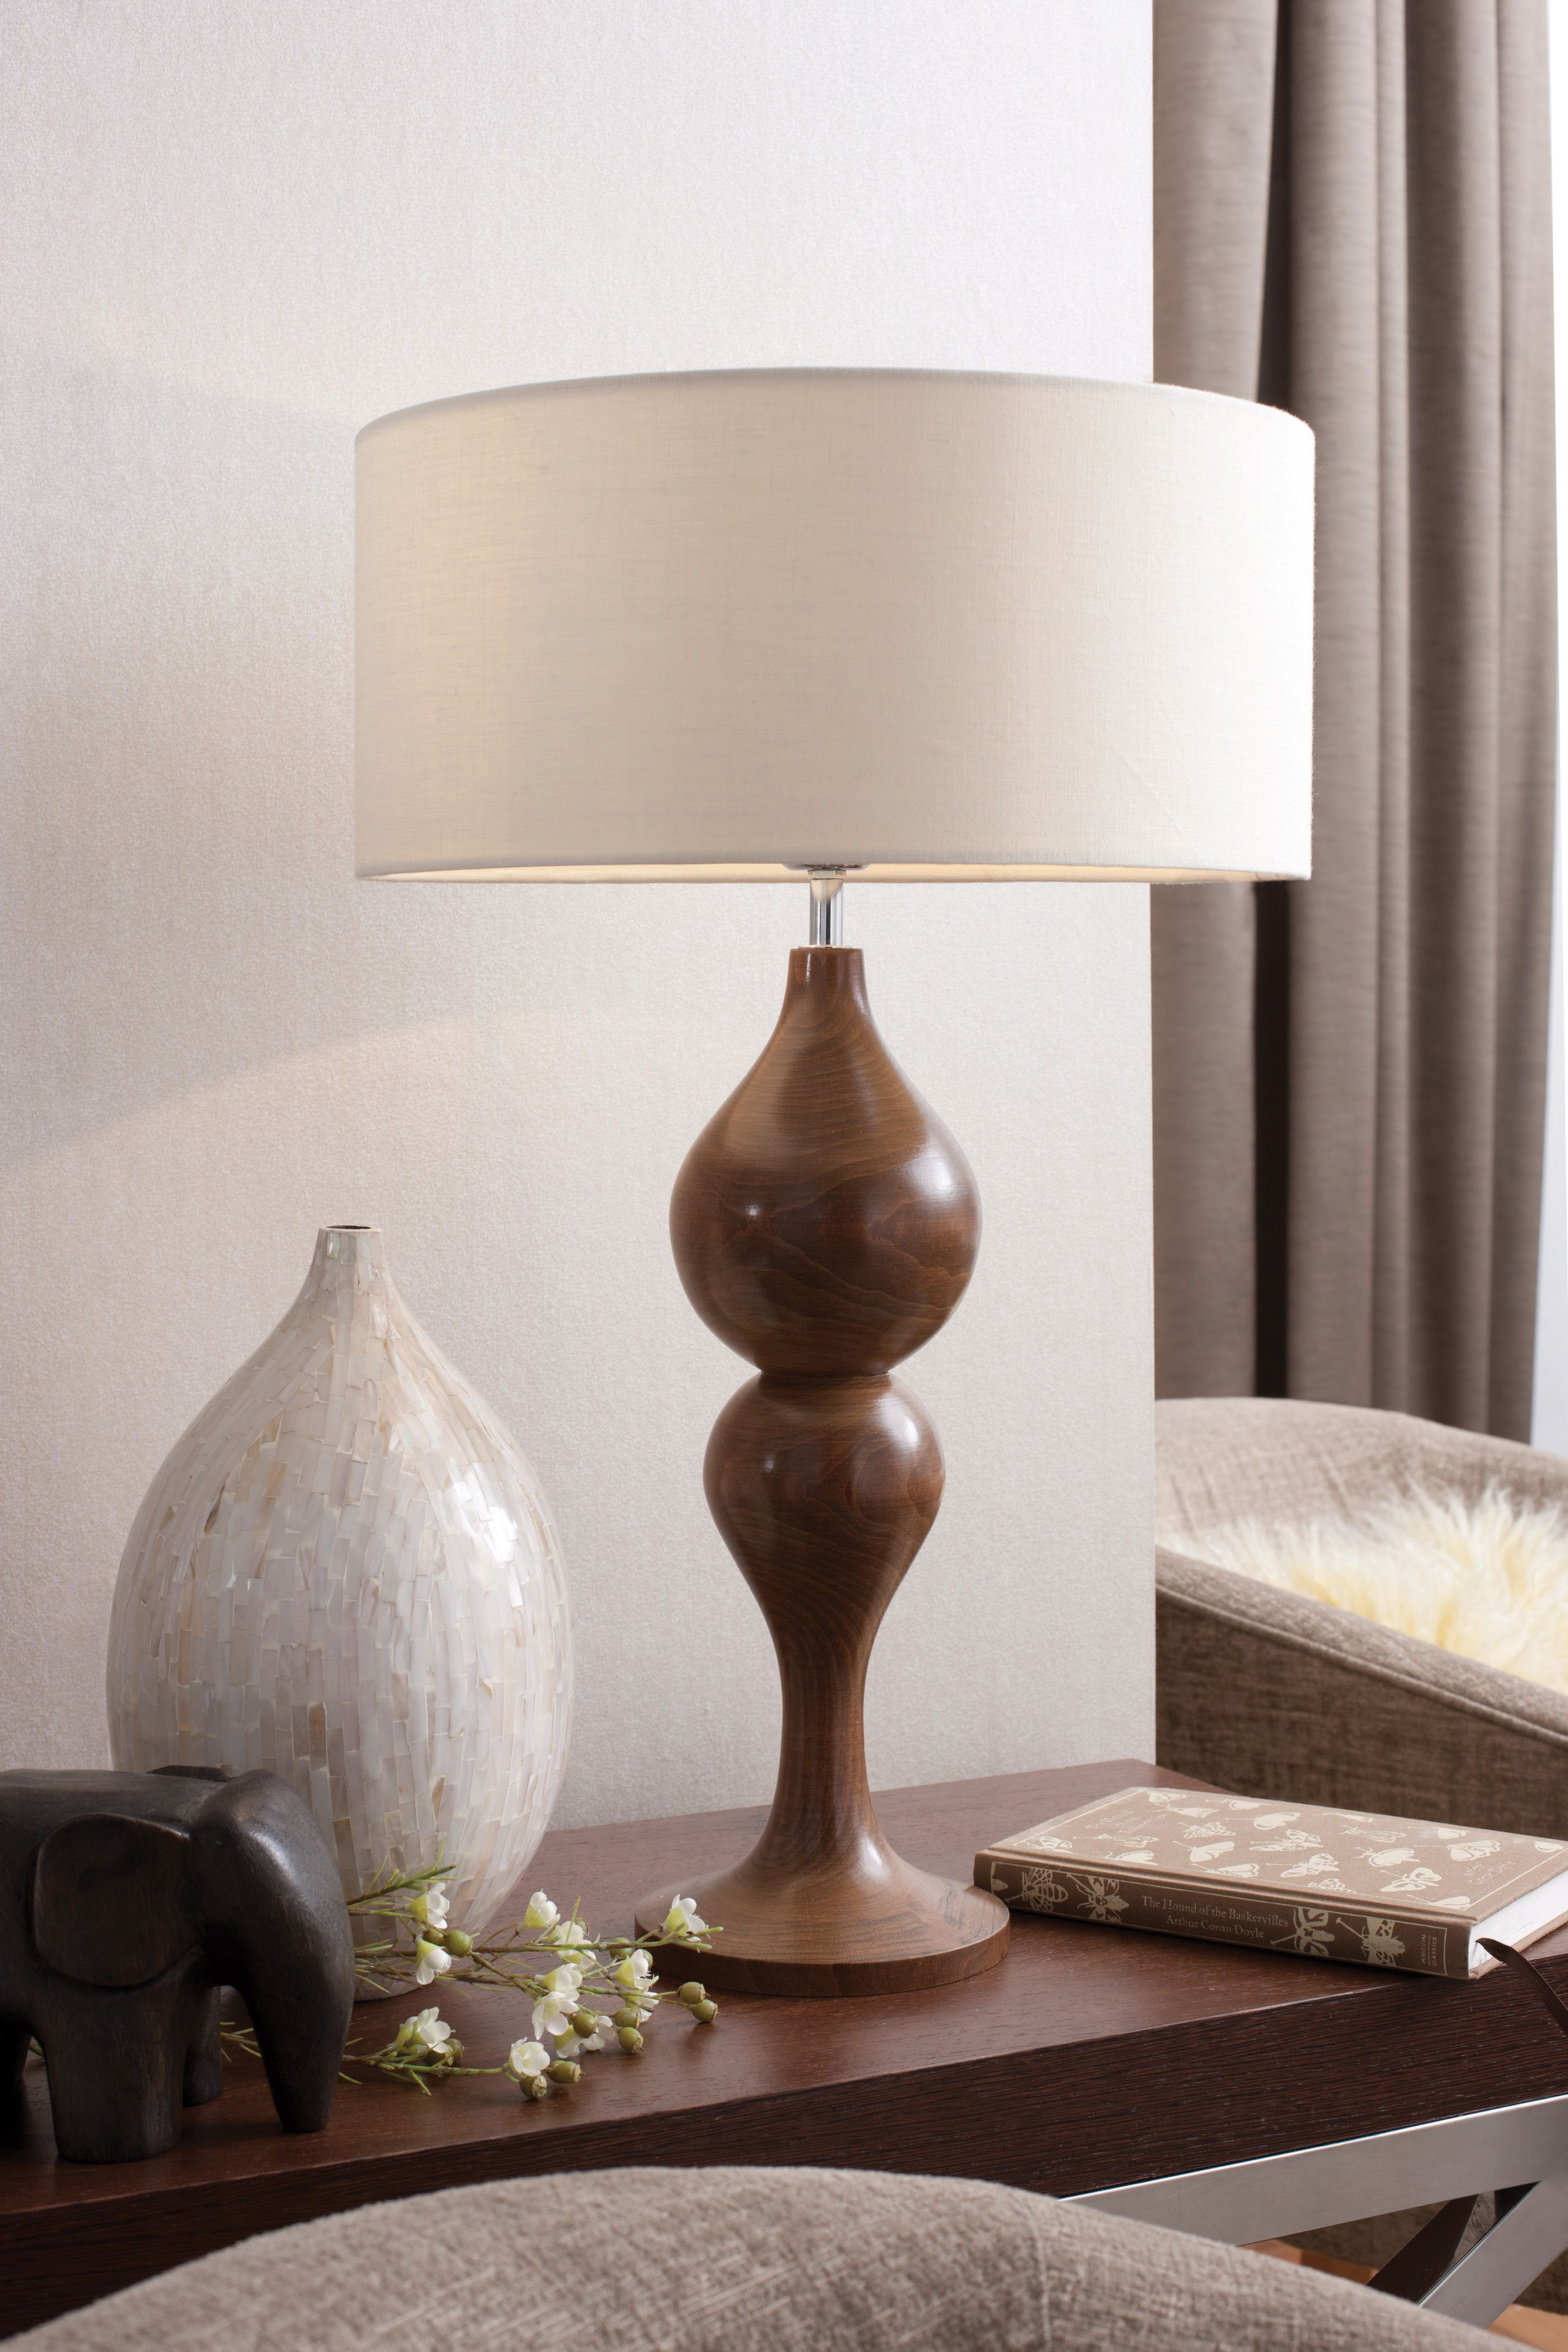 Antique wood table lamps - Marli Antique Oak Medium Table Lamp Turned Alder Wood Table Lamp Hand Finished With Water Based